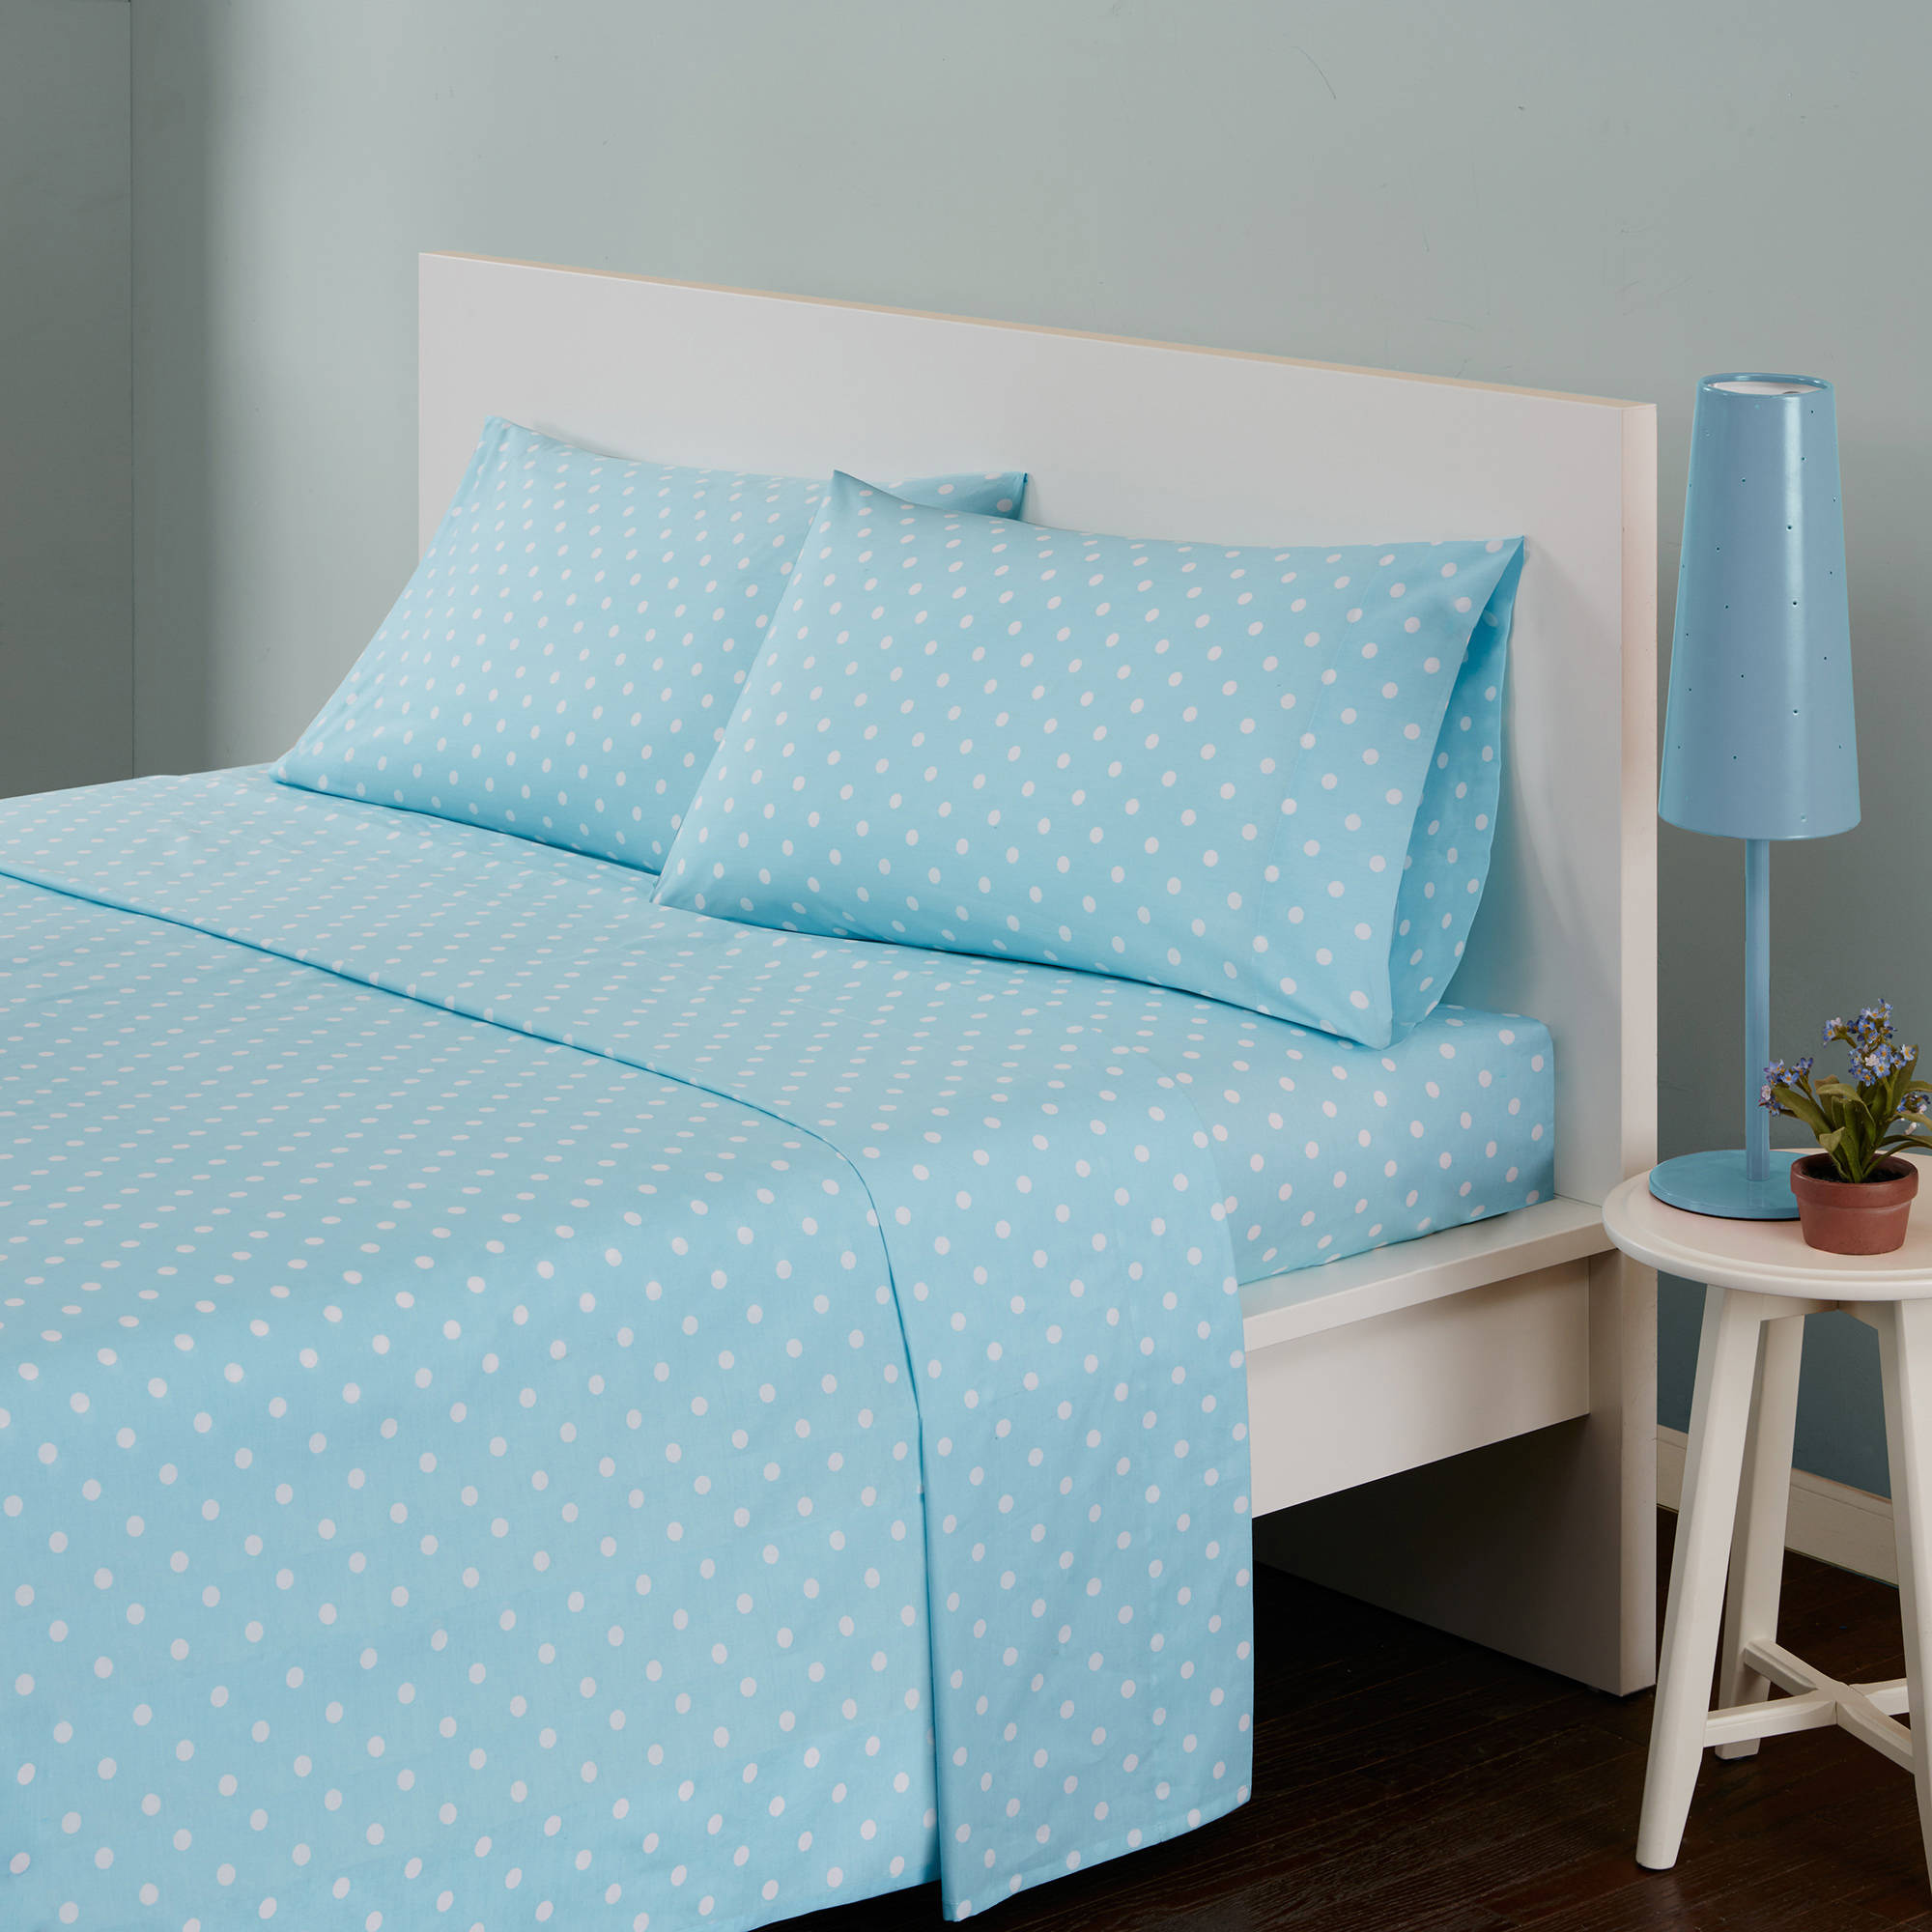 Home Essence Apartment Polka Dot Cotton Sheet Set